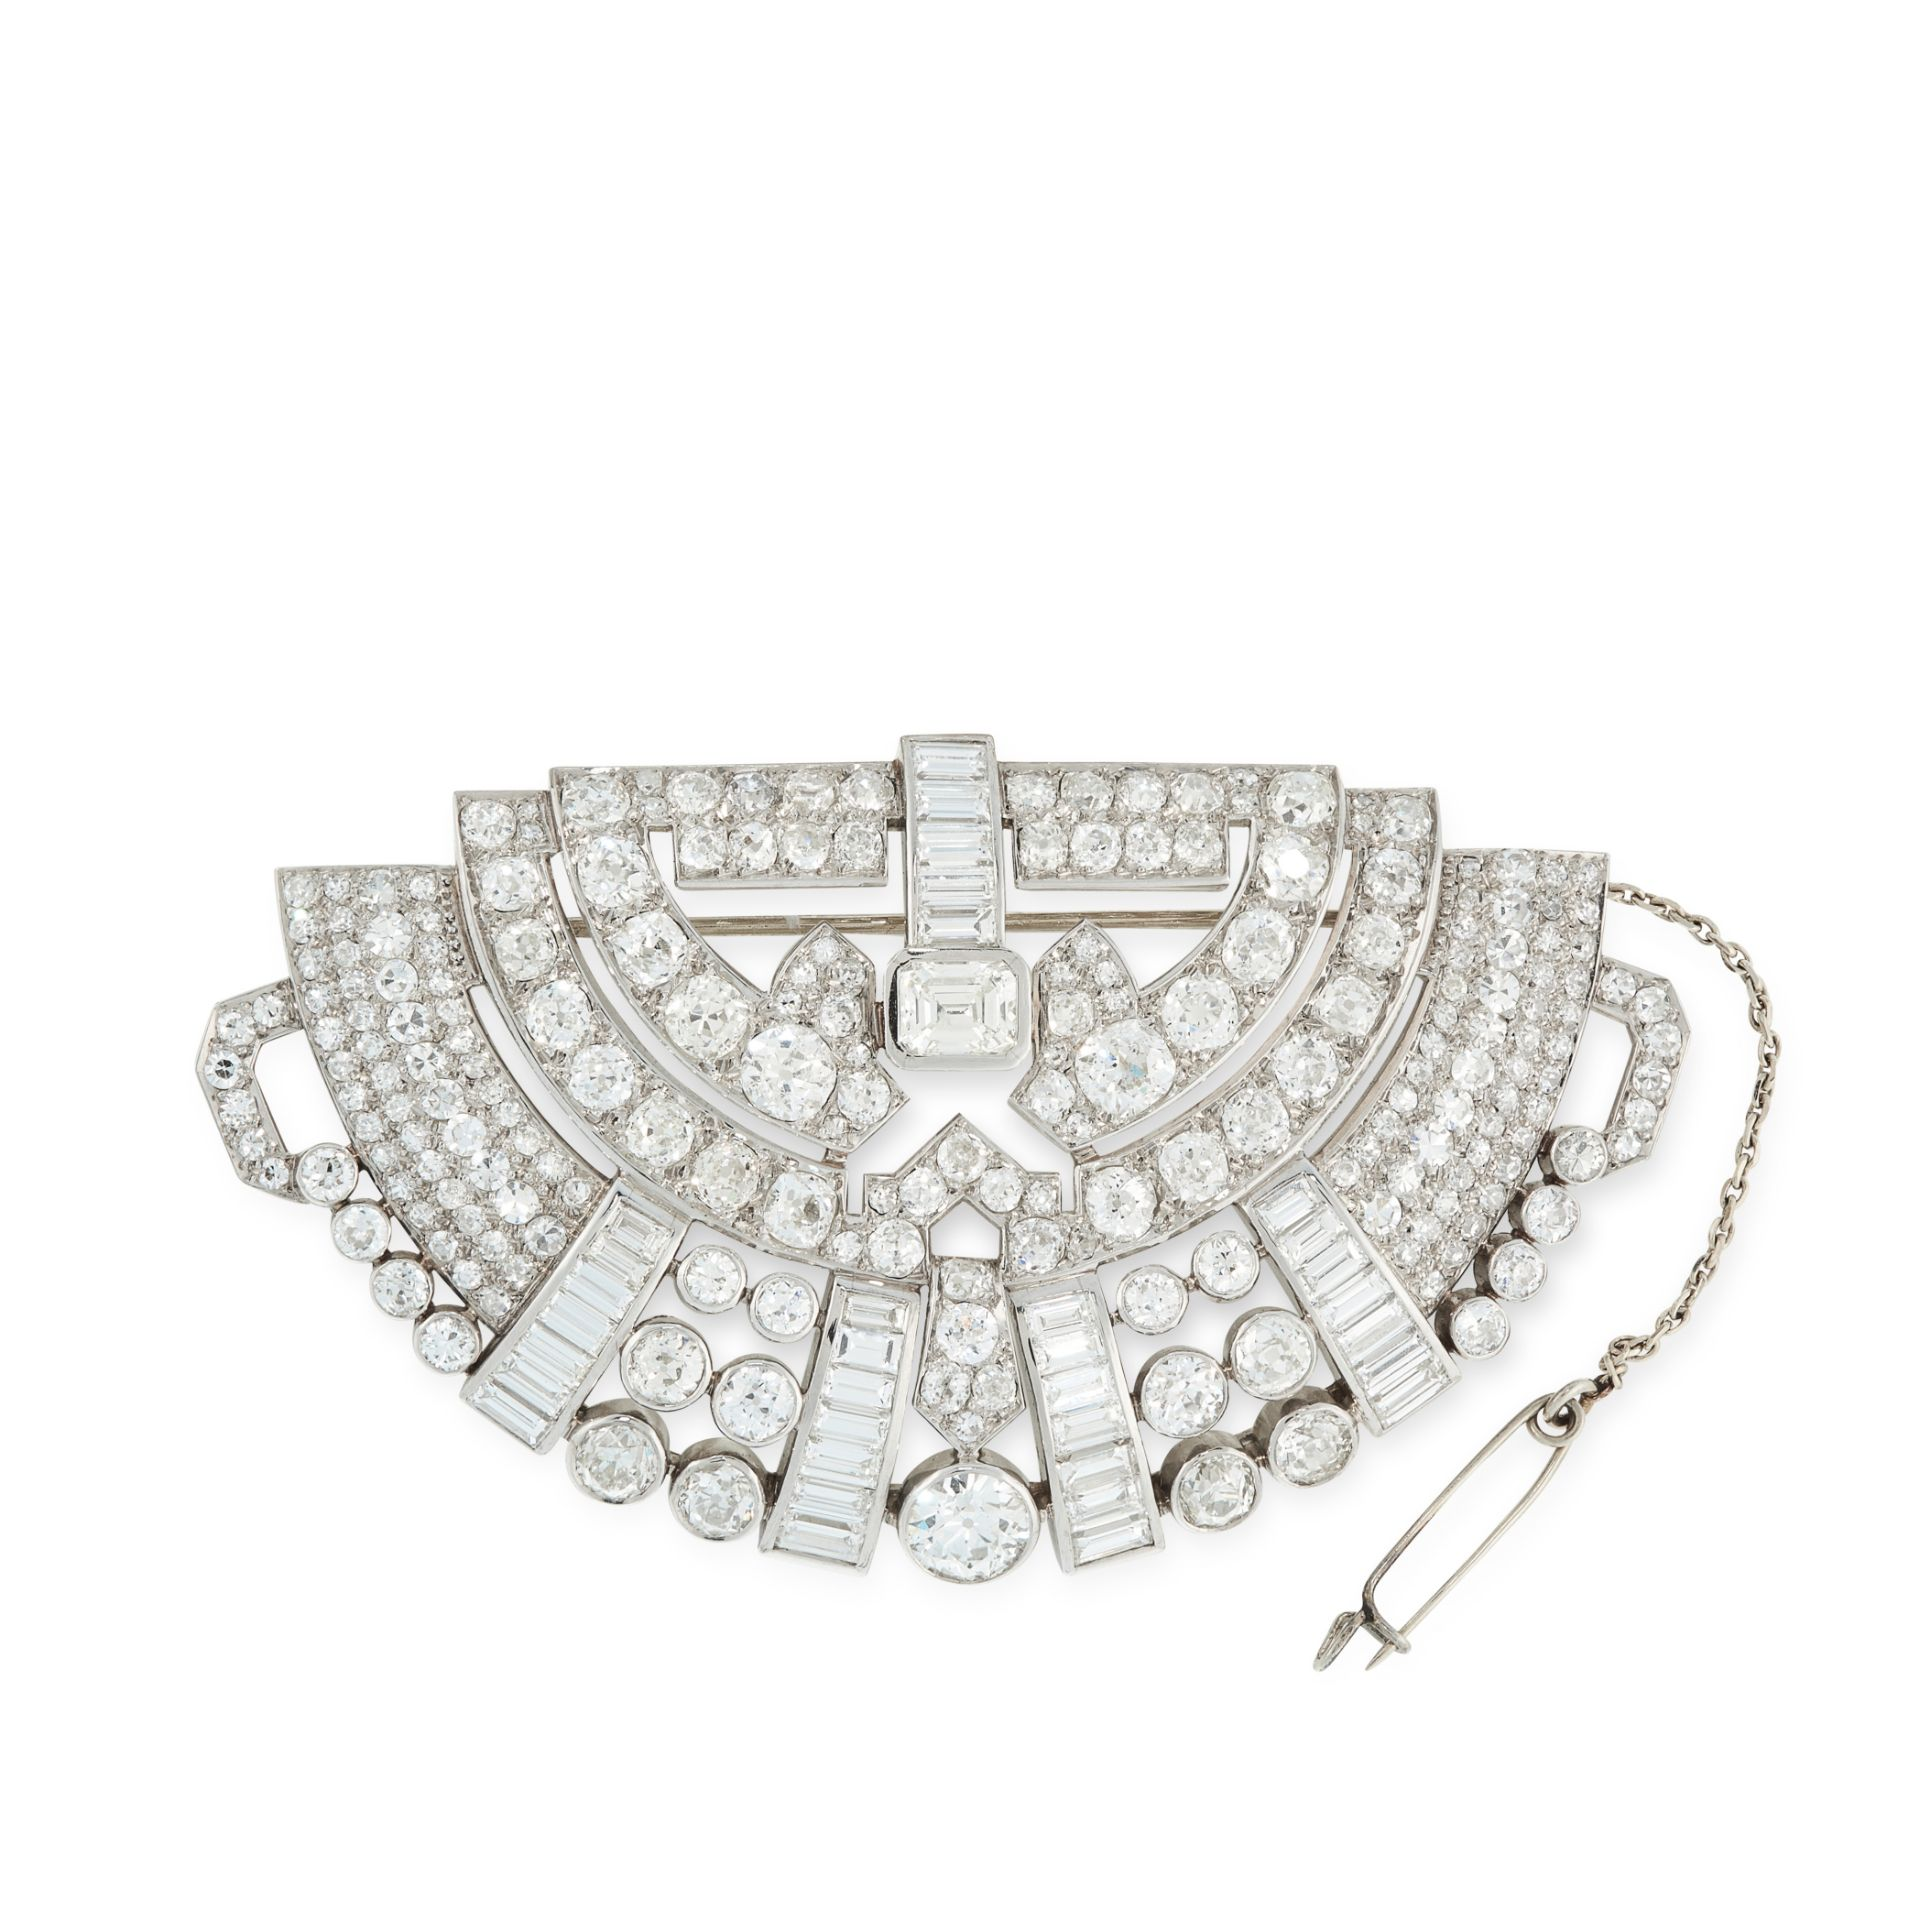 A VINTAGE DIAMOND BROOCH, CIRCA 1950 of demilune design, set with two principal diamonds, one old